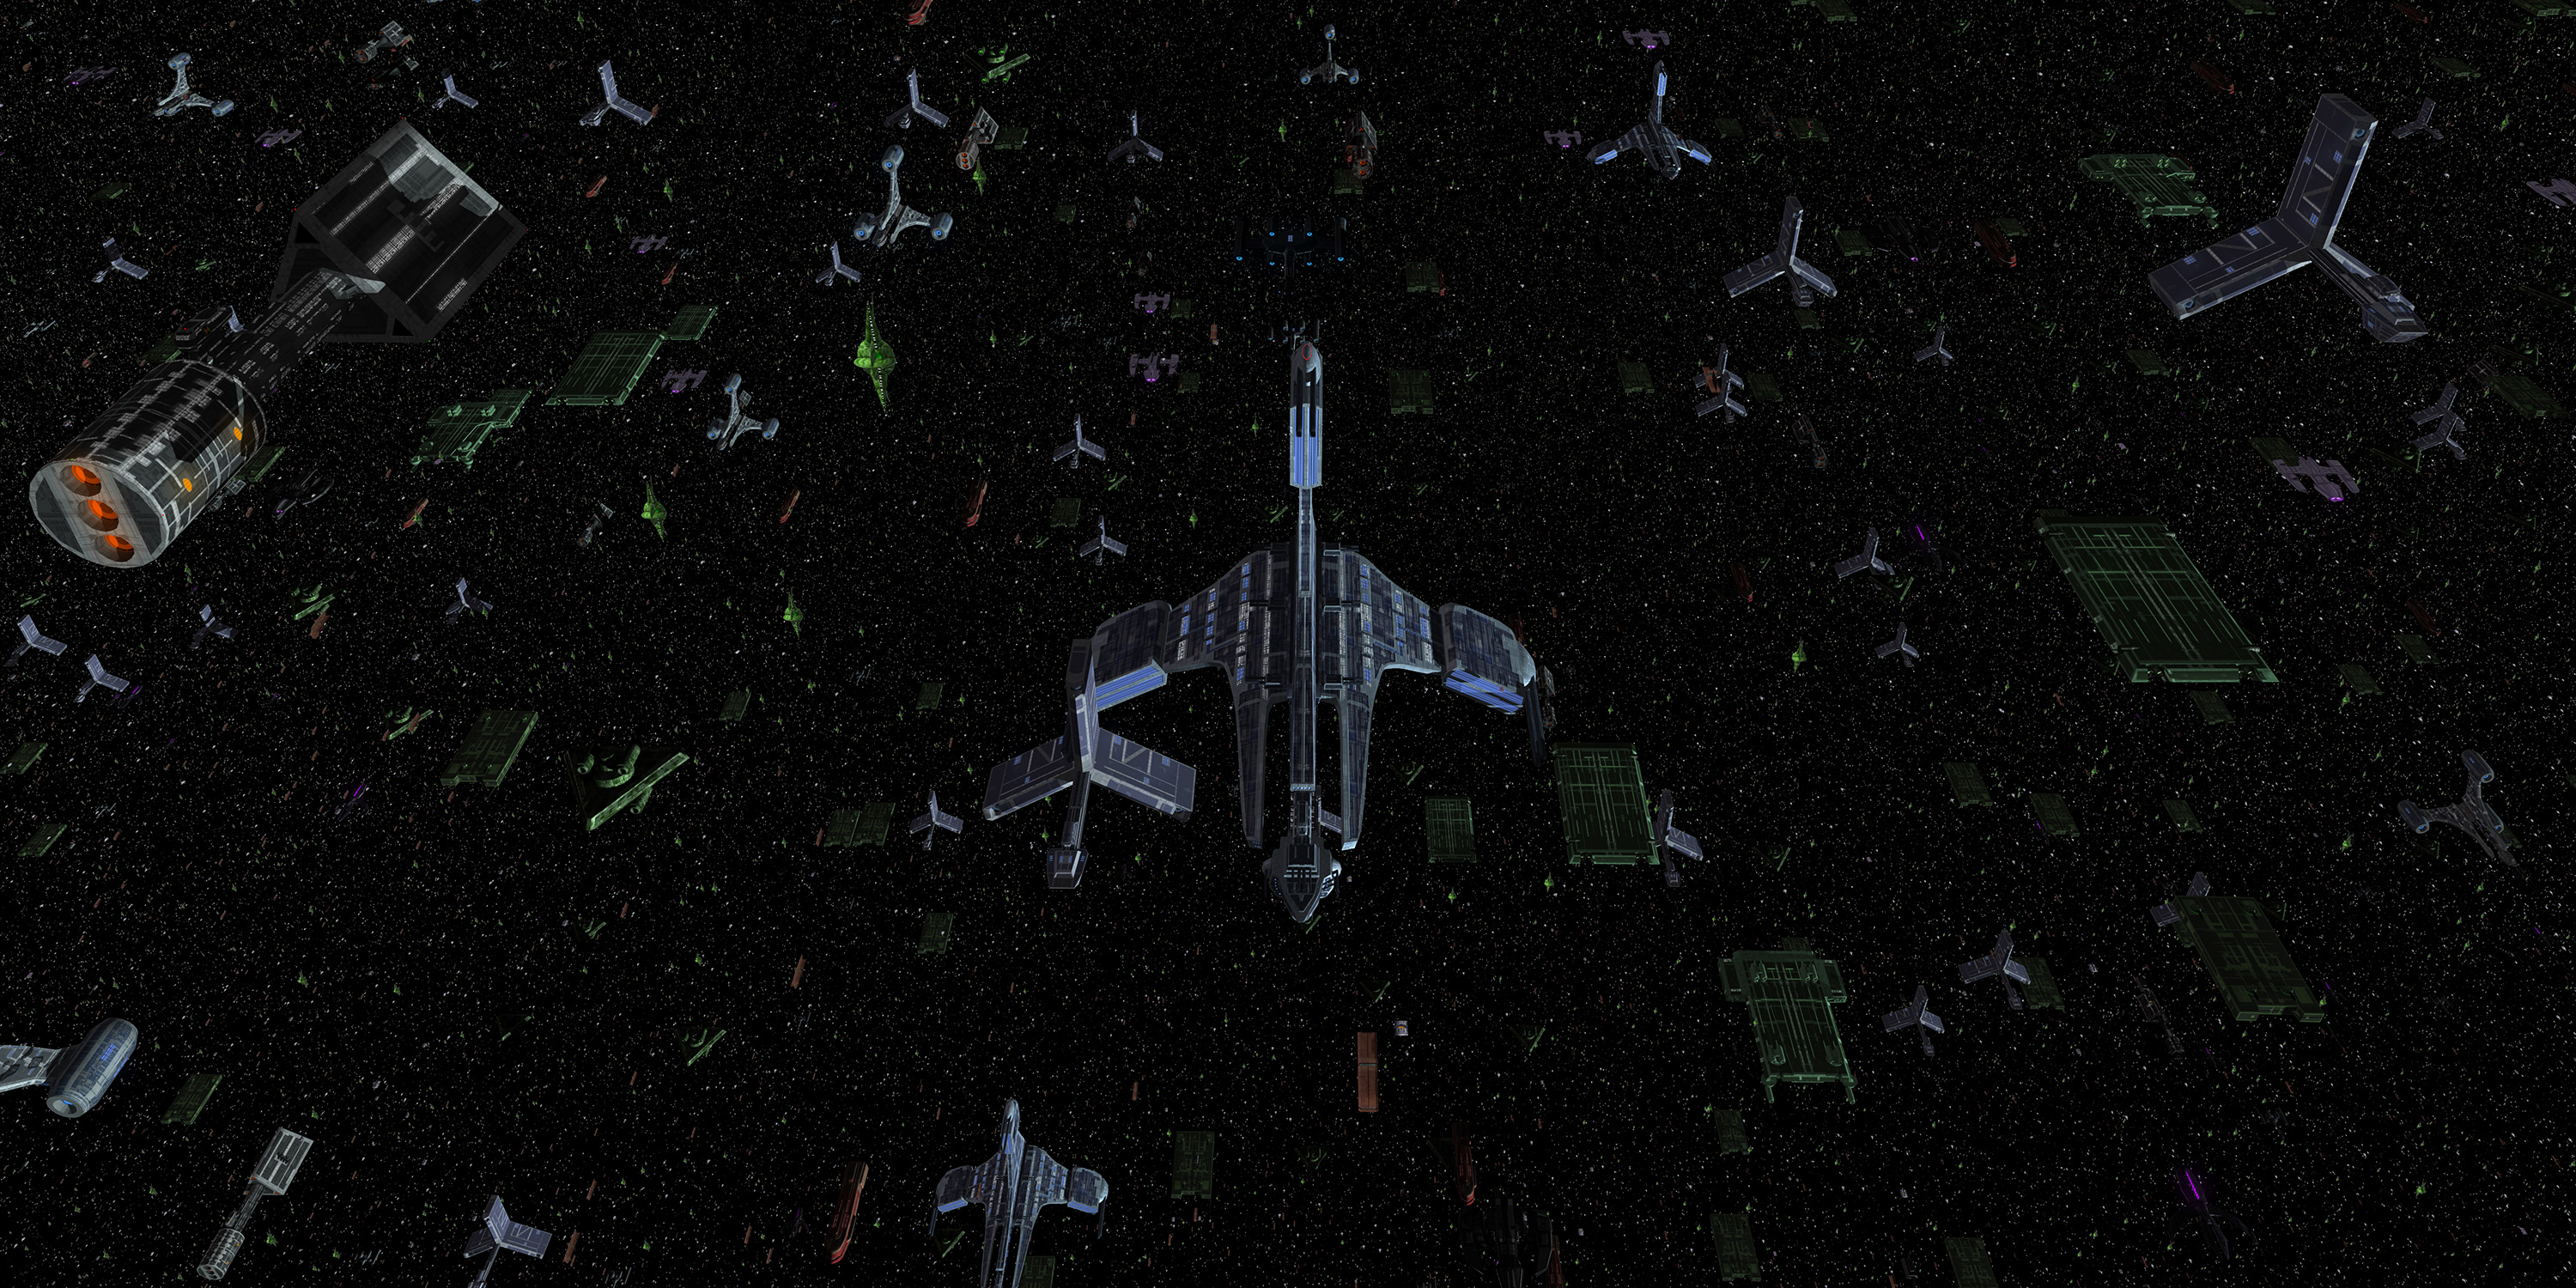 Milky Way Alliance Fleet Rendering